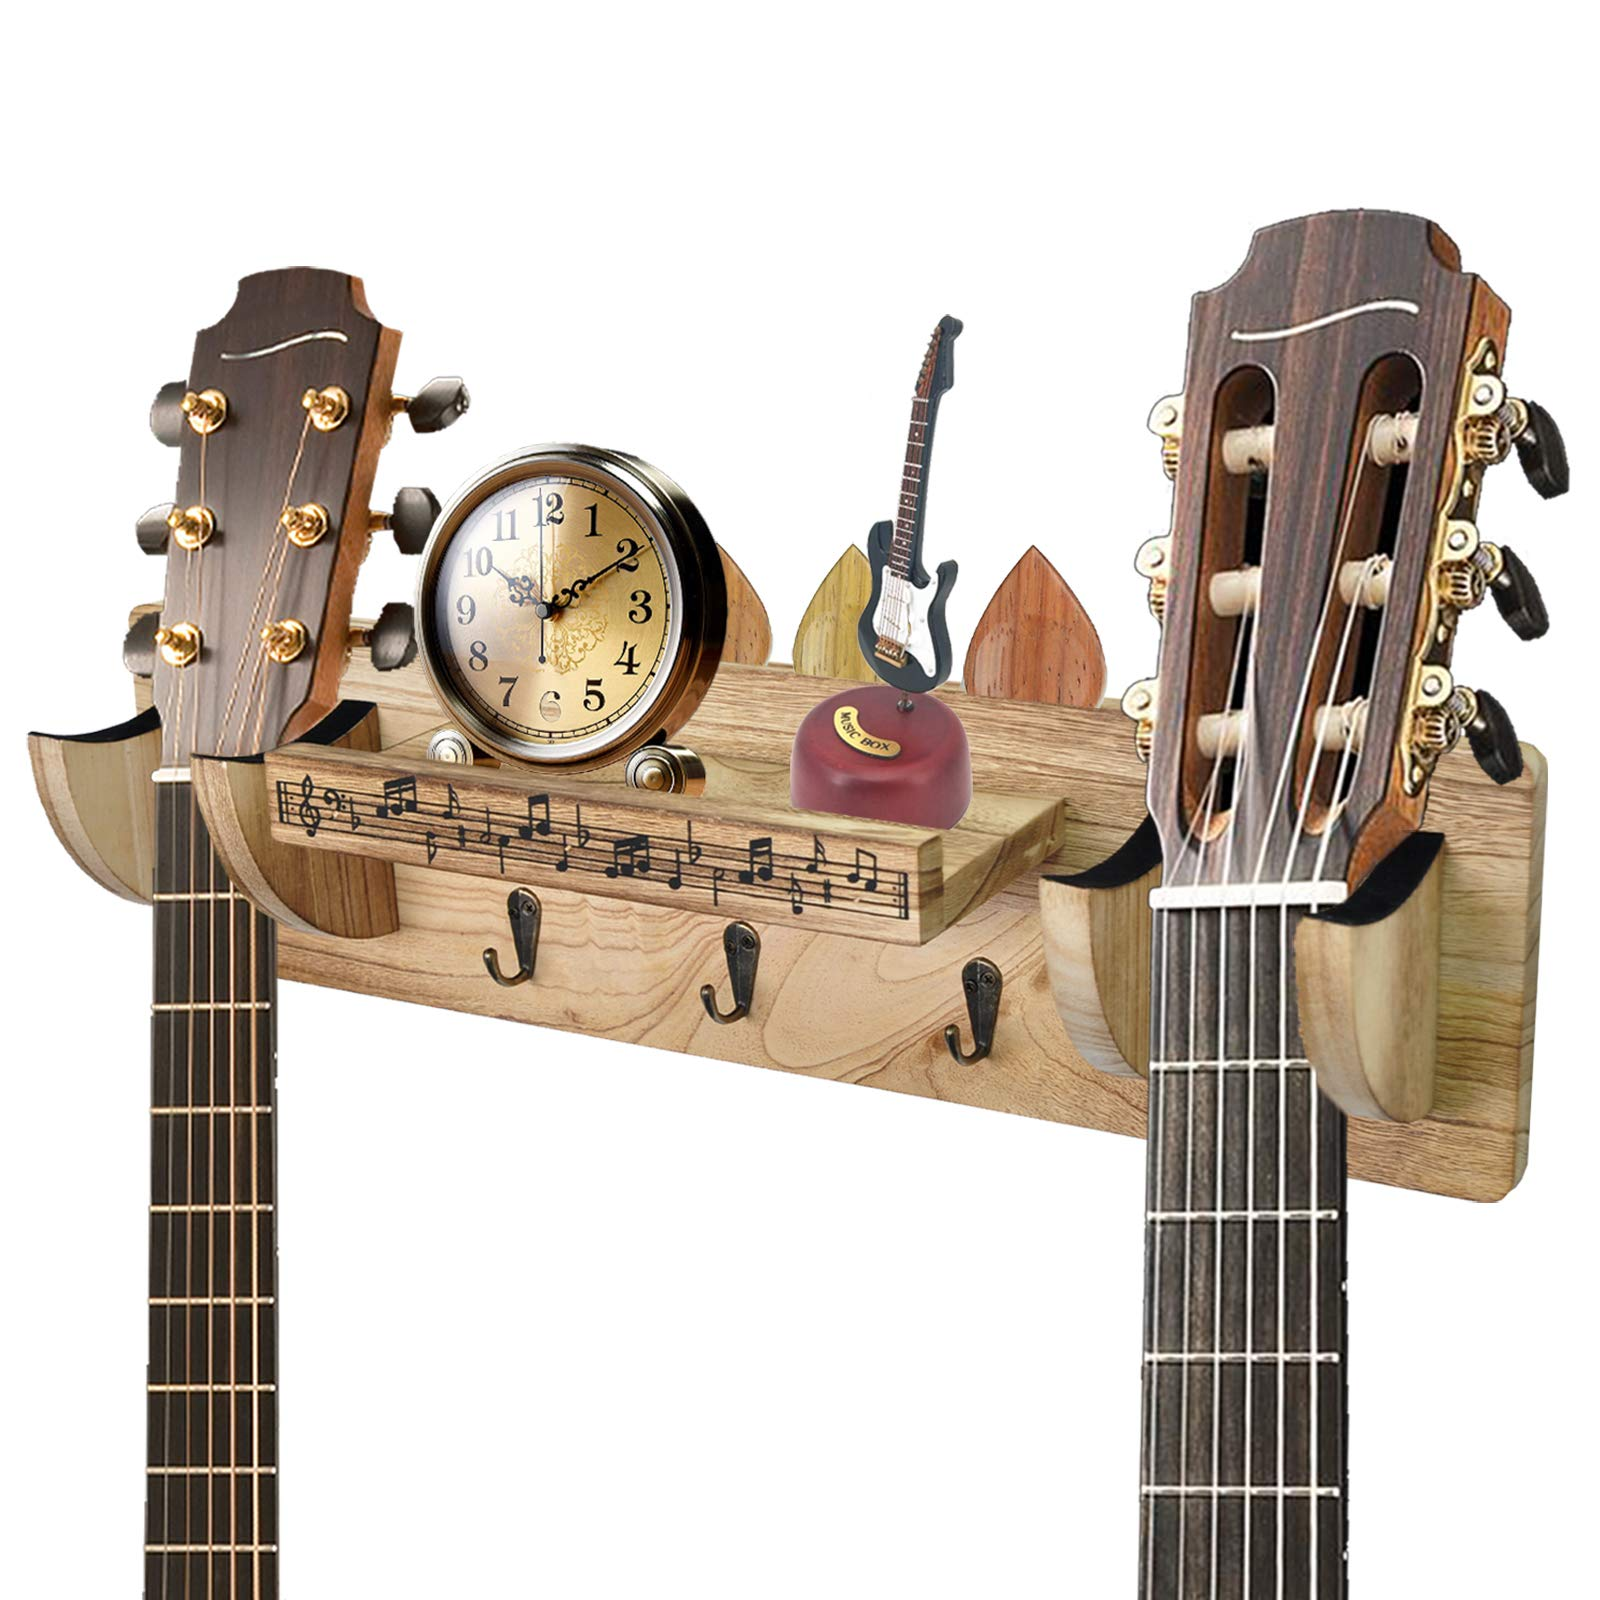 Double Guitar Holder Wall Mount, Guitar Wall Hanger Guitar Stand Guitar Wall Mount Bracket with Guitar Accessories Storage Shelf and 3 Metal Hooks, Suitable for Various Places